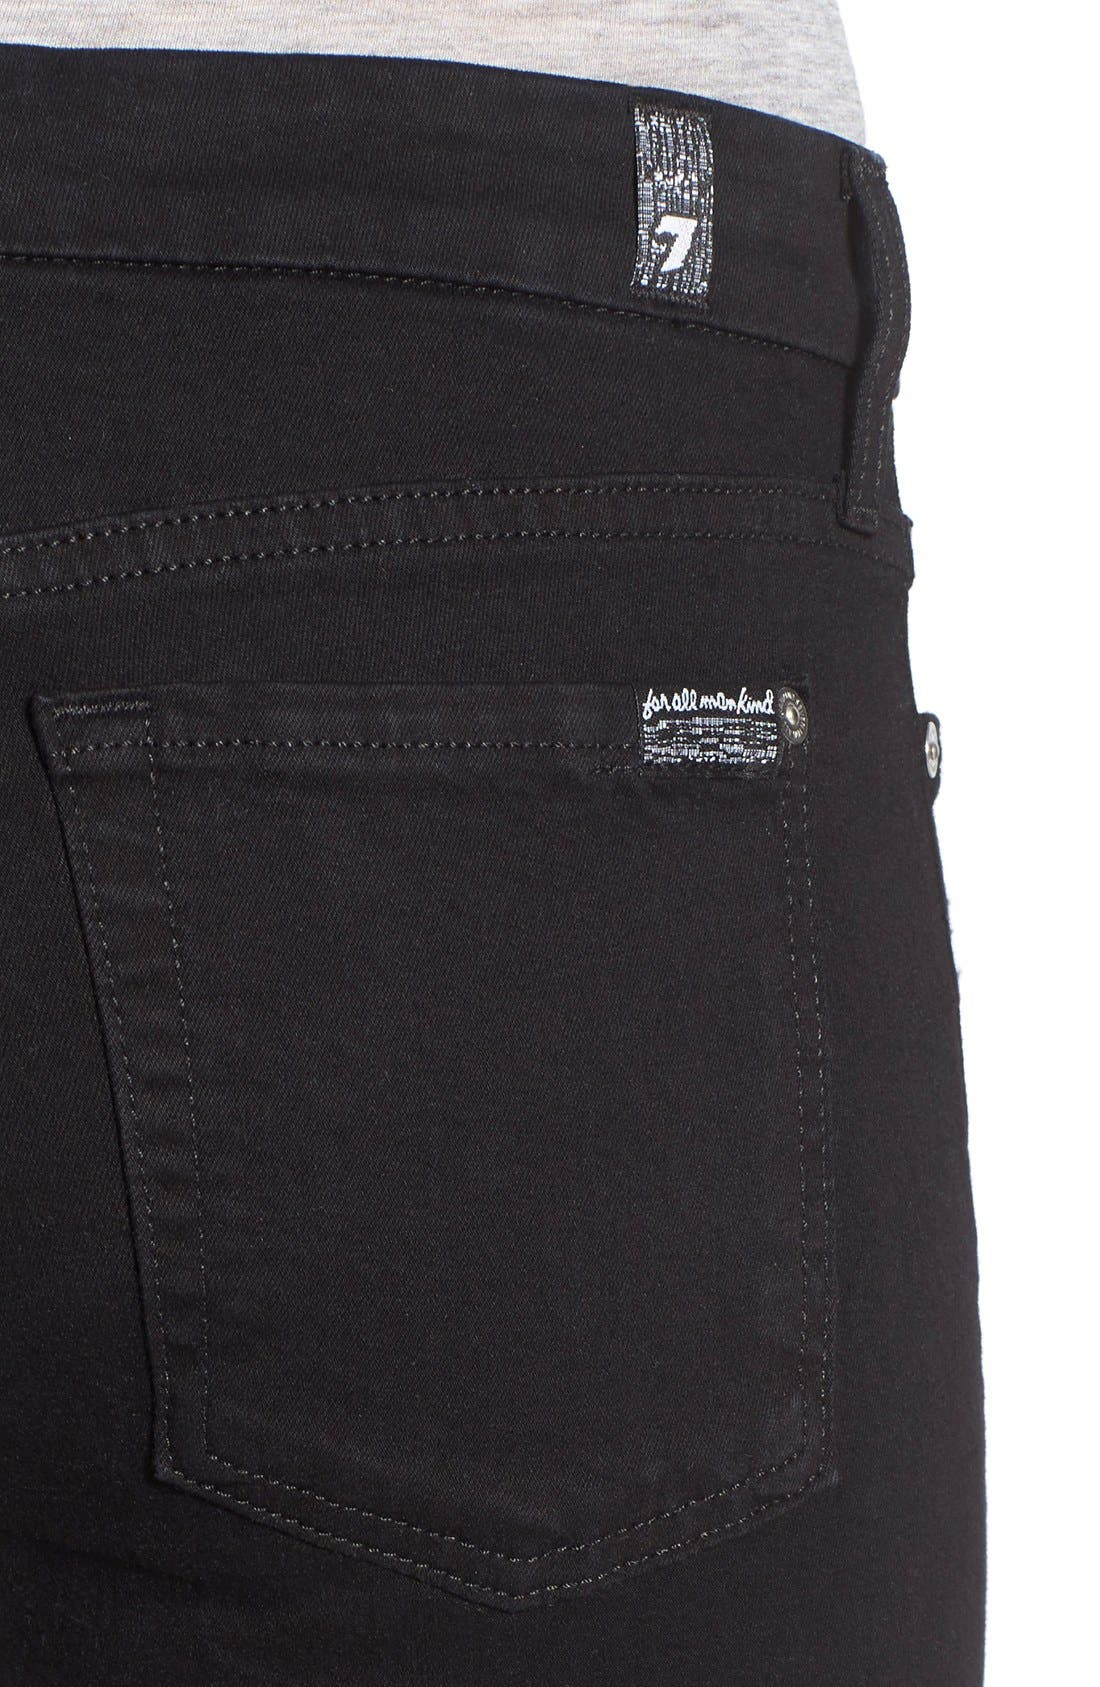 Alternate Image 4  - 7 For All Mankind® Destroyed Ankle Skinny Jeans (Slim Illusion Luxe Black)